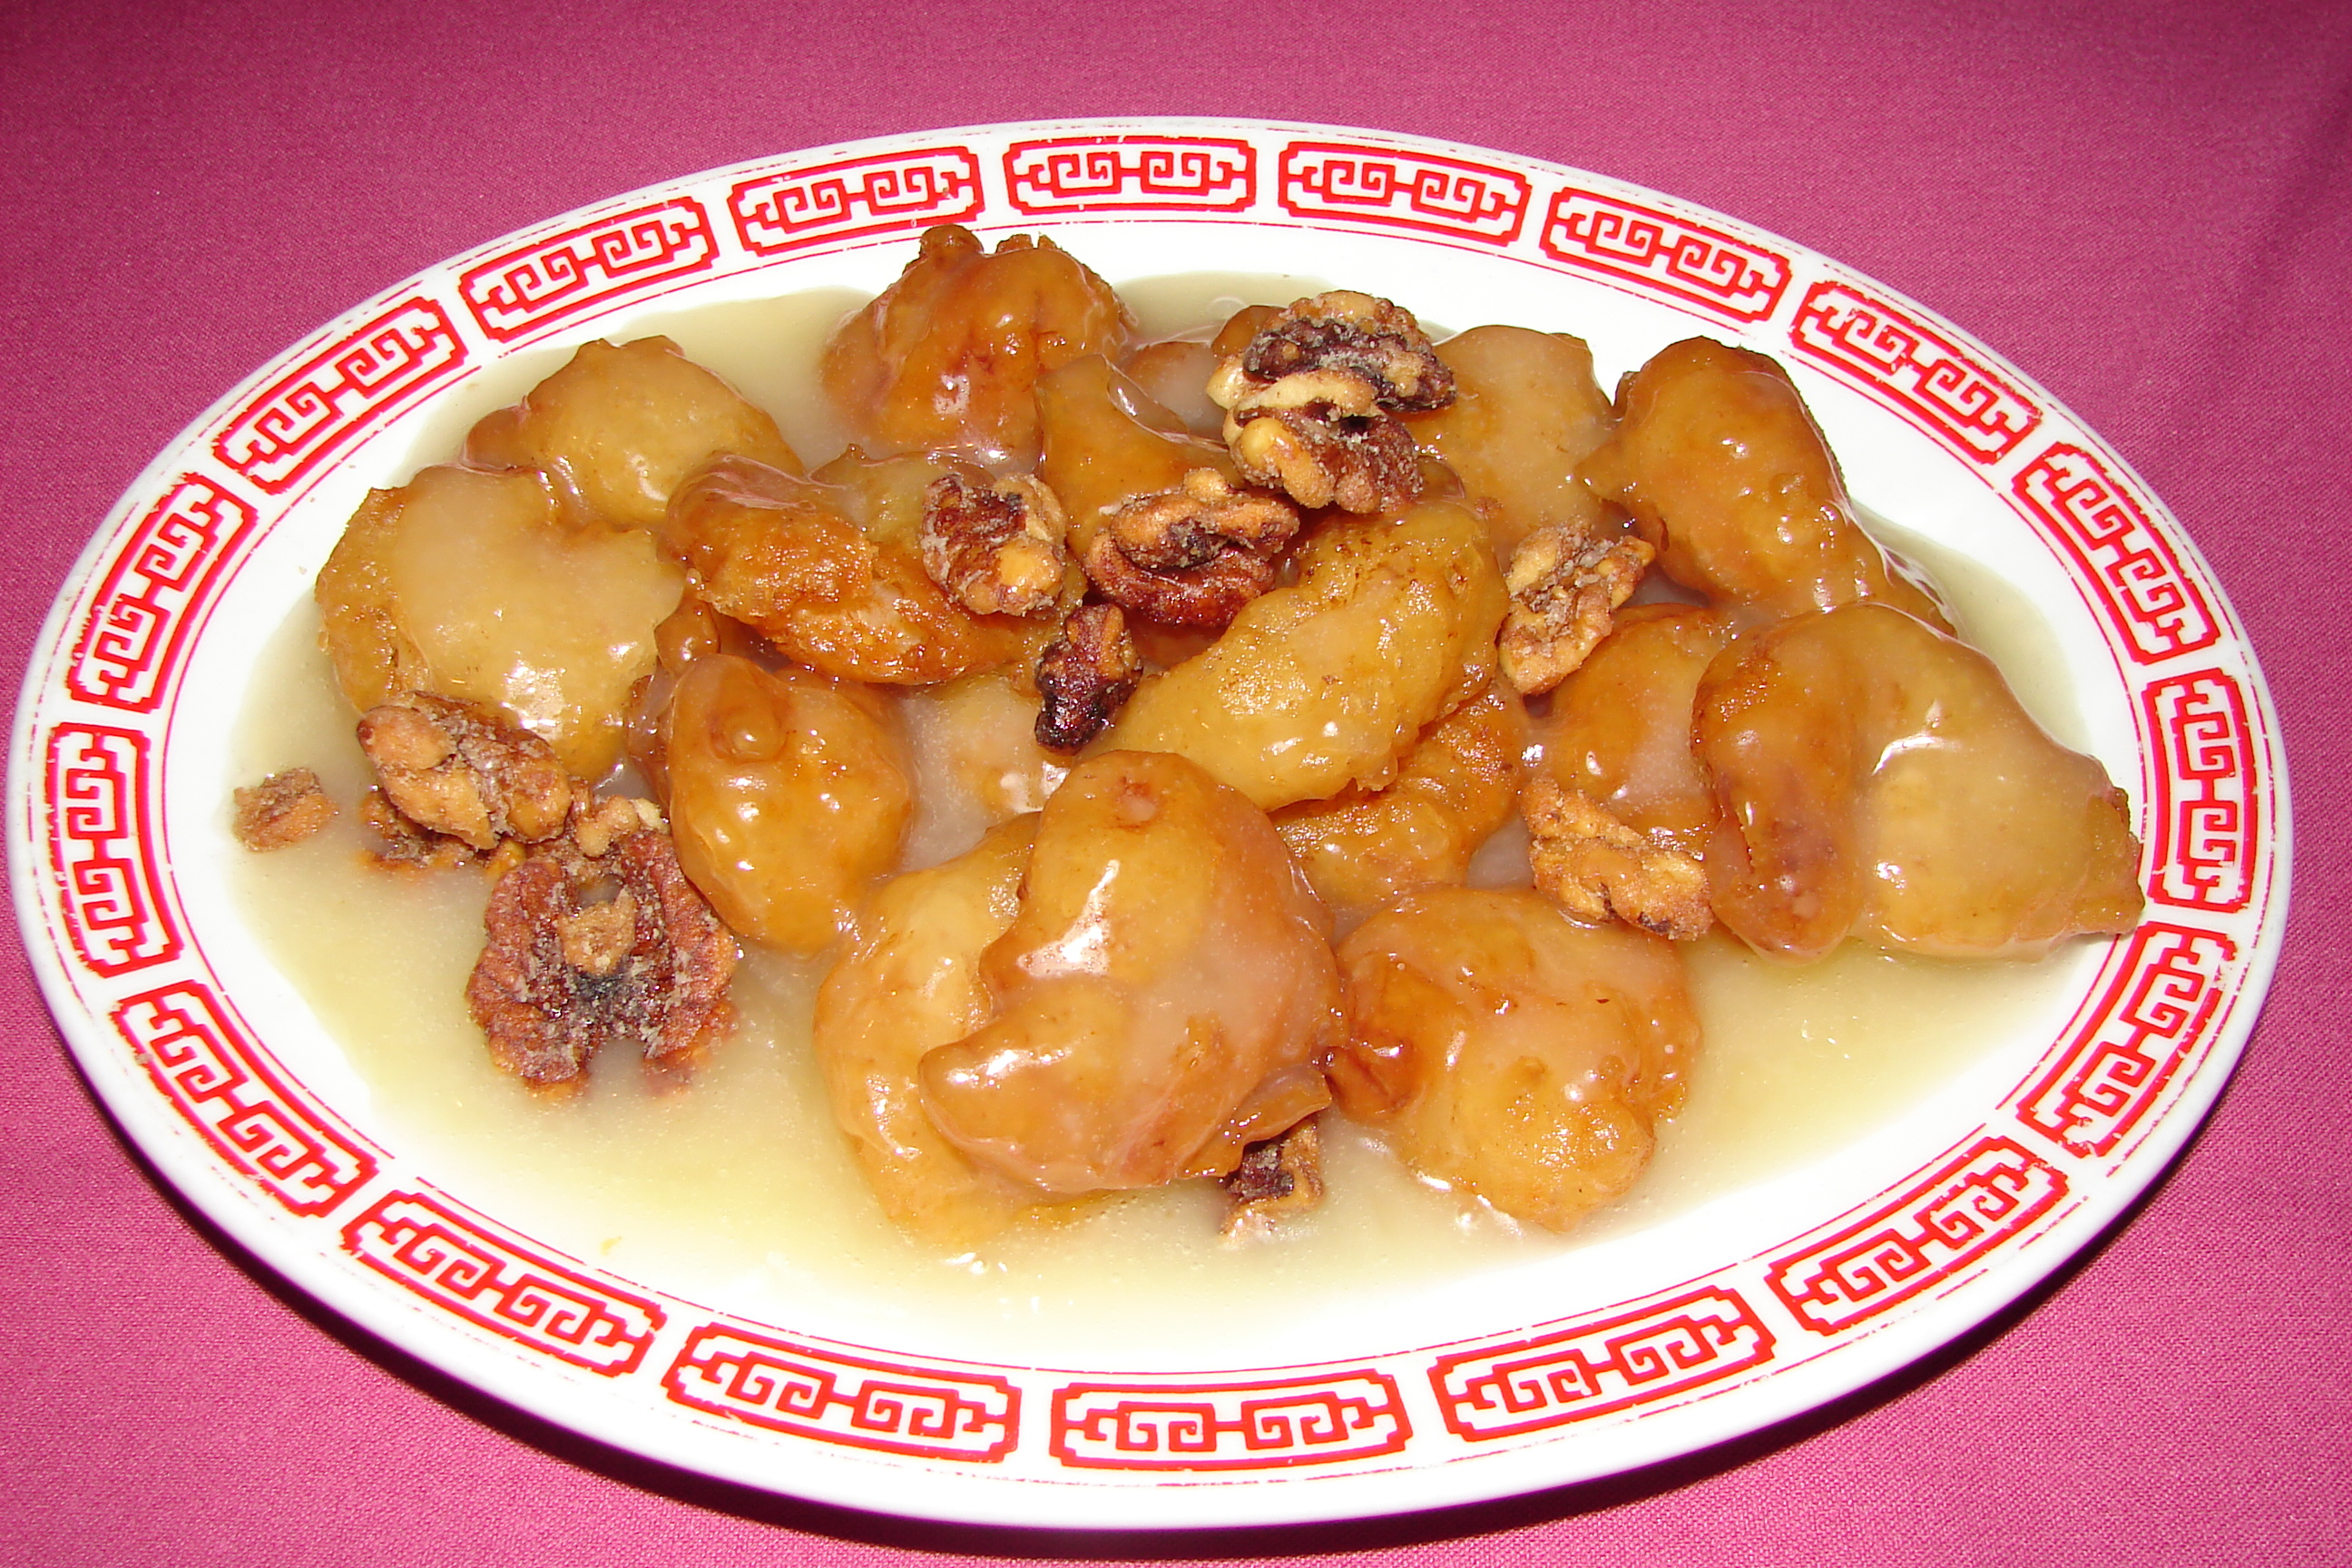 Hunan Shrimp House of hunan specialty